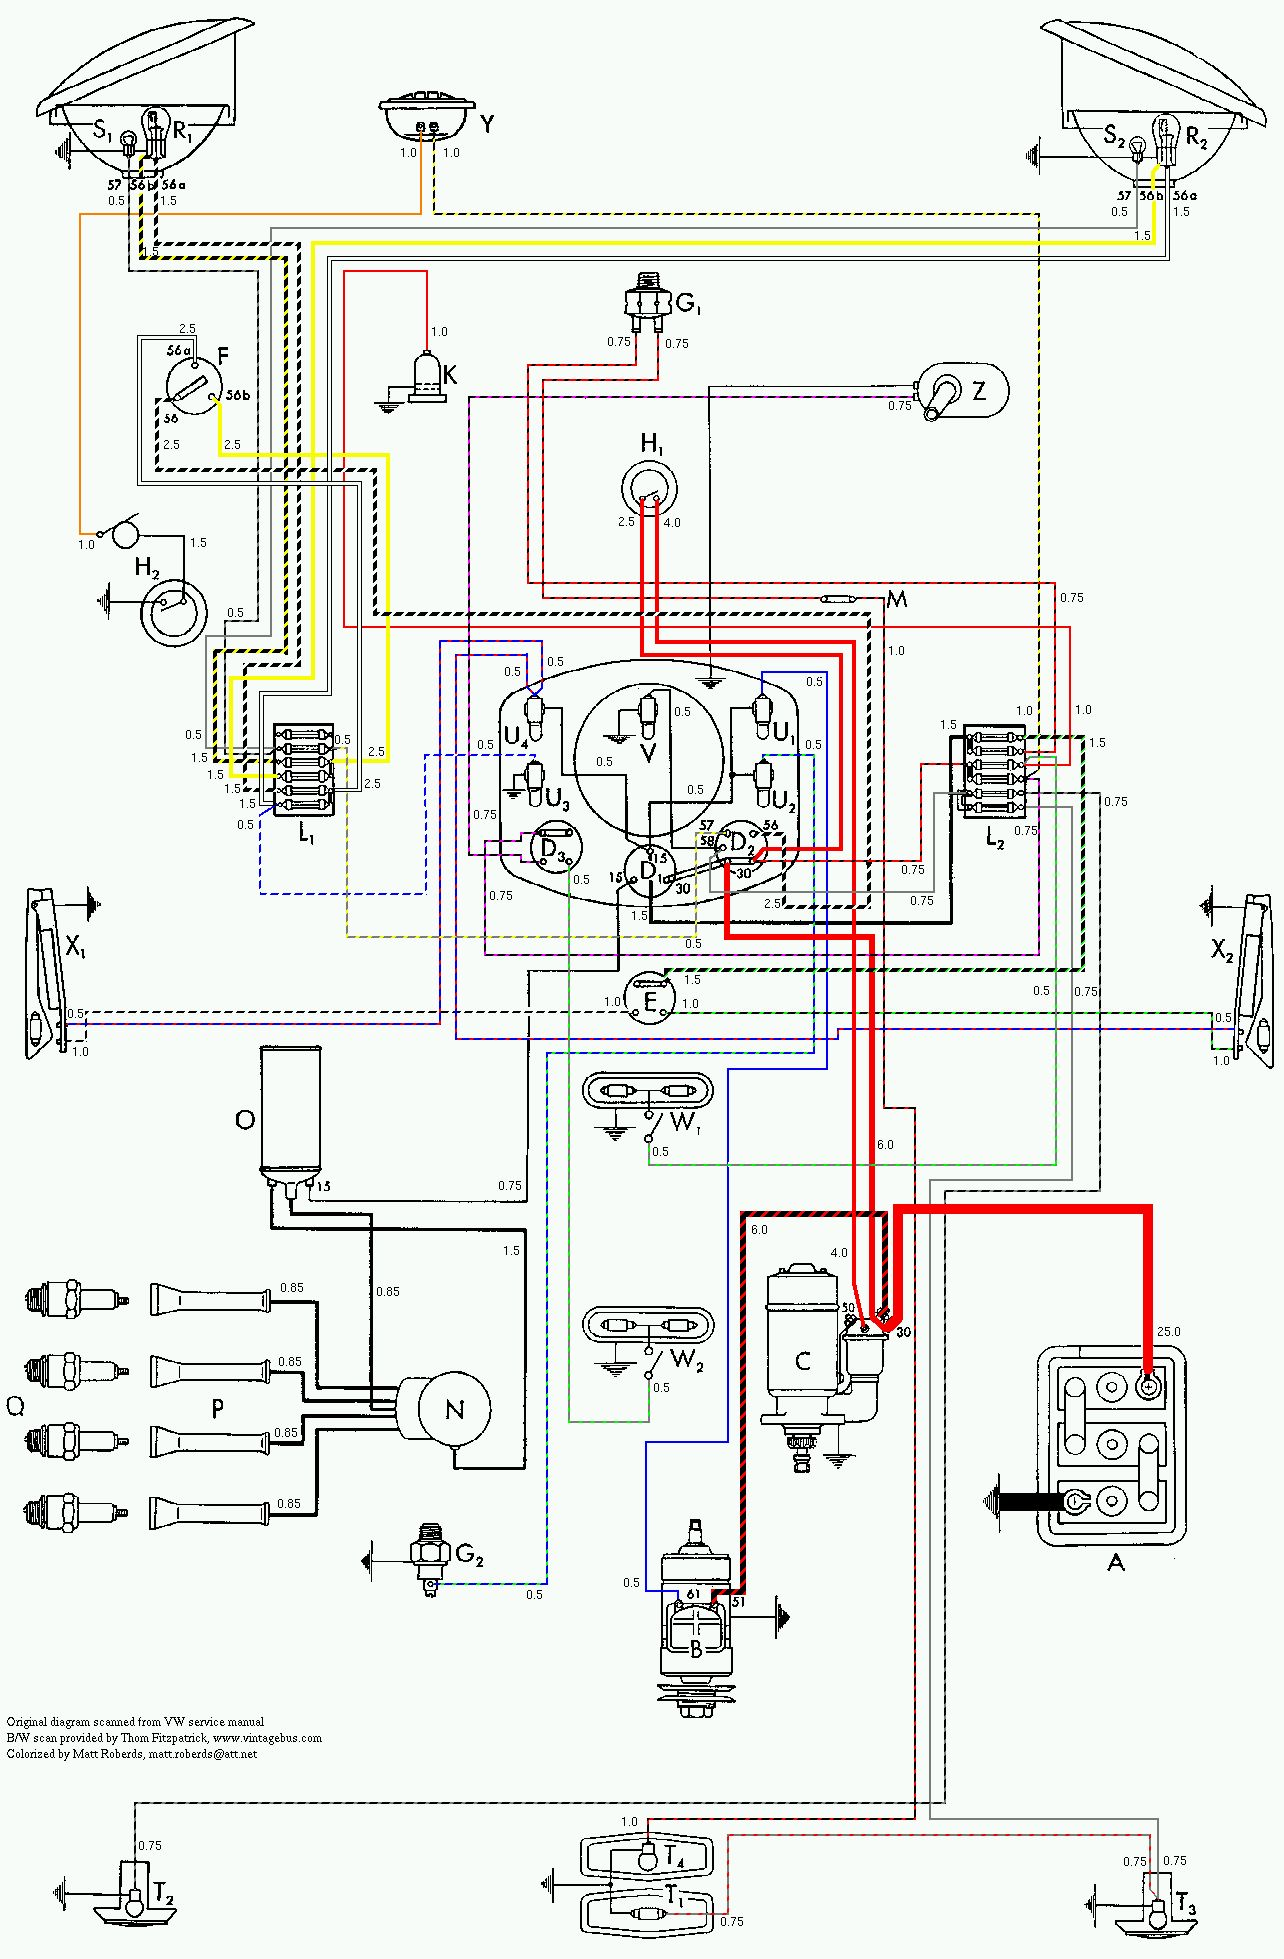 Vintagebus vw bus and other wiring diagrams bus publicscrutiny Choice Image